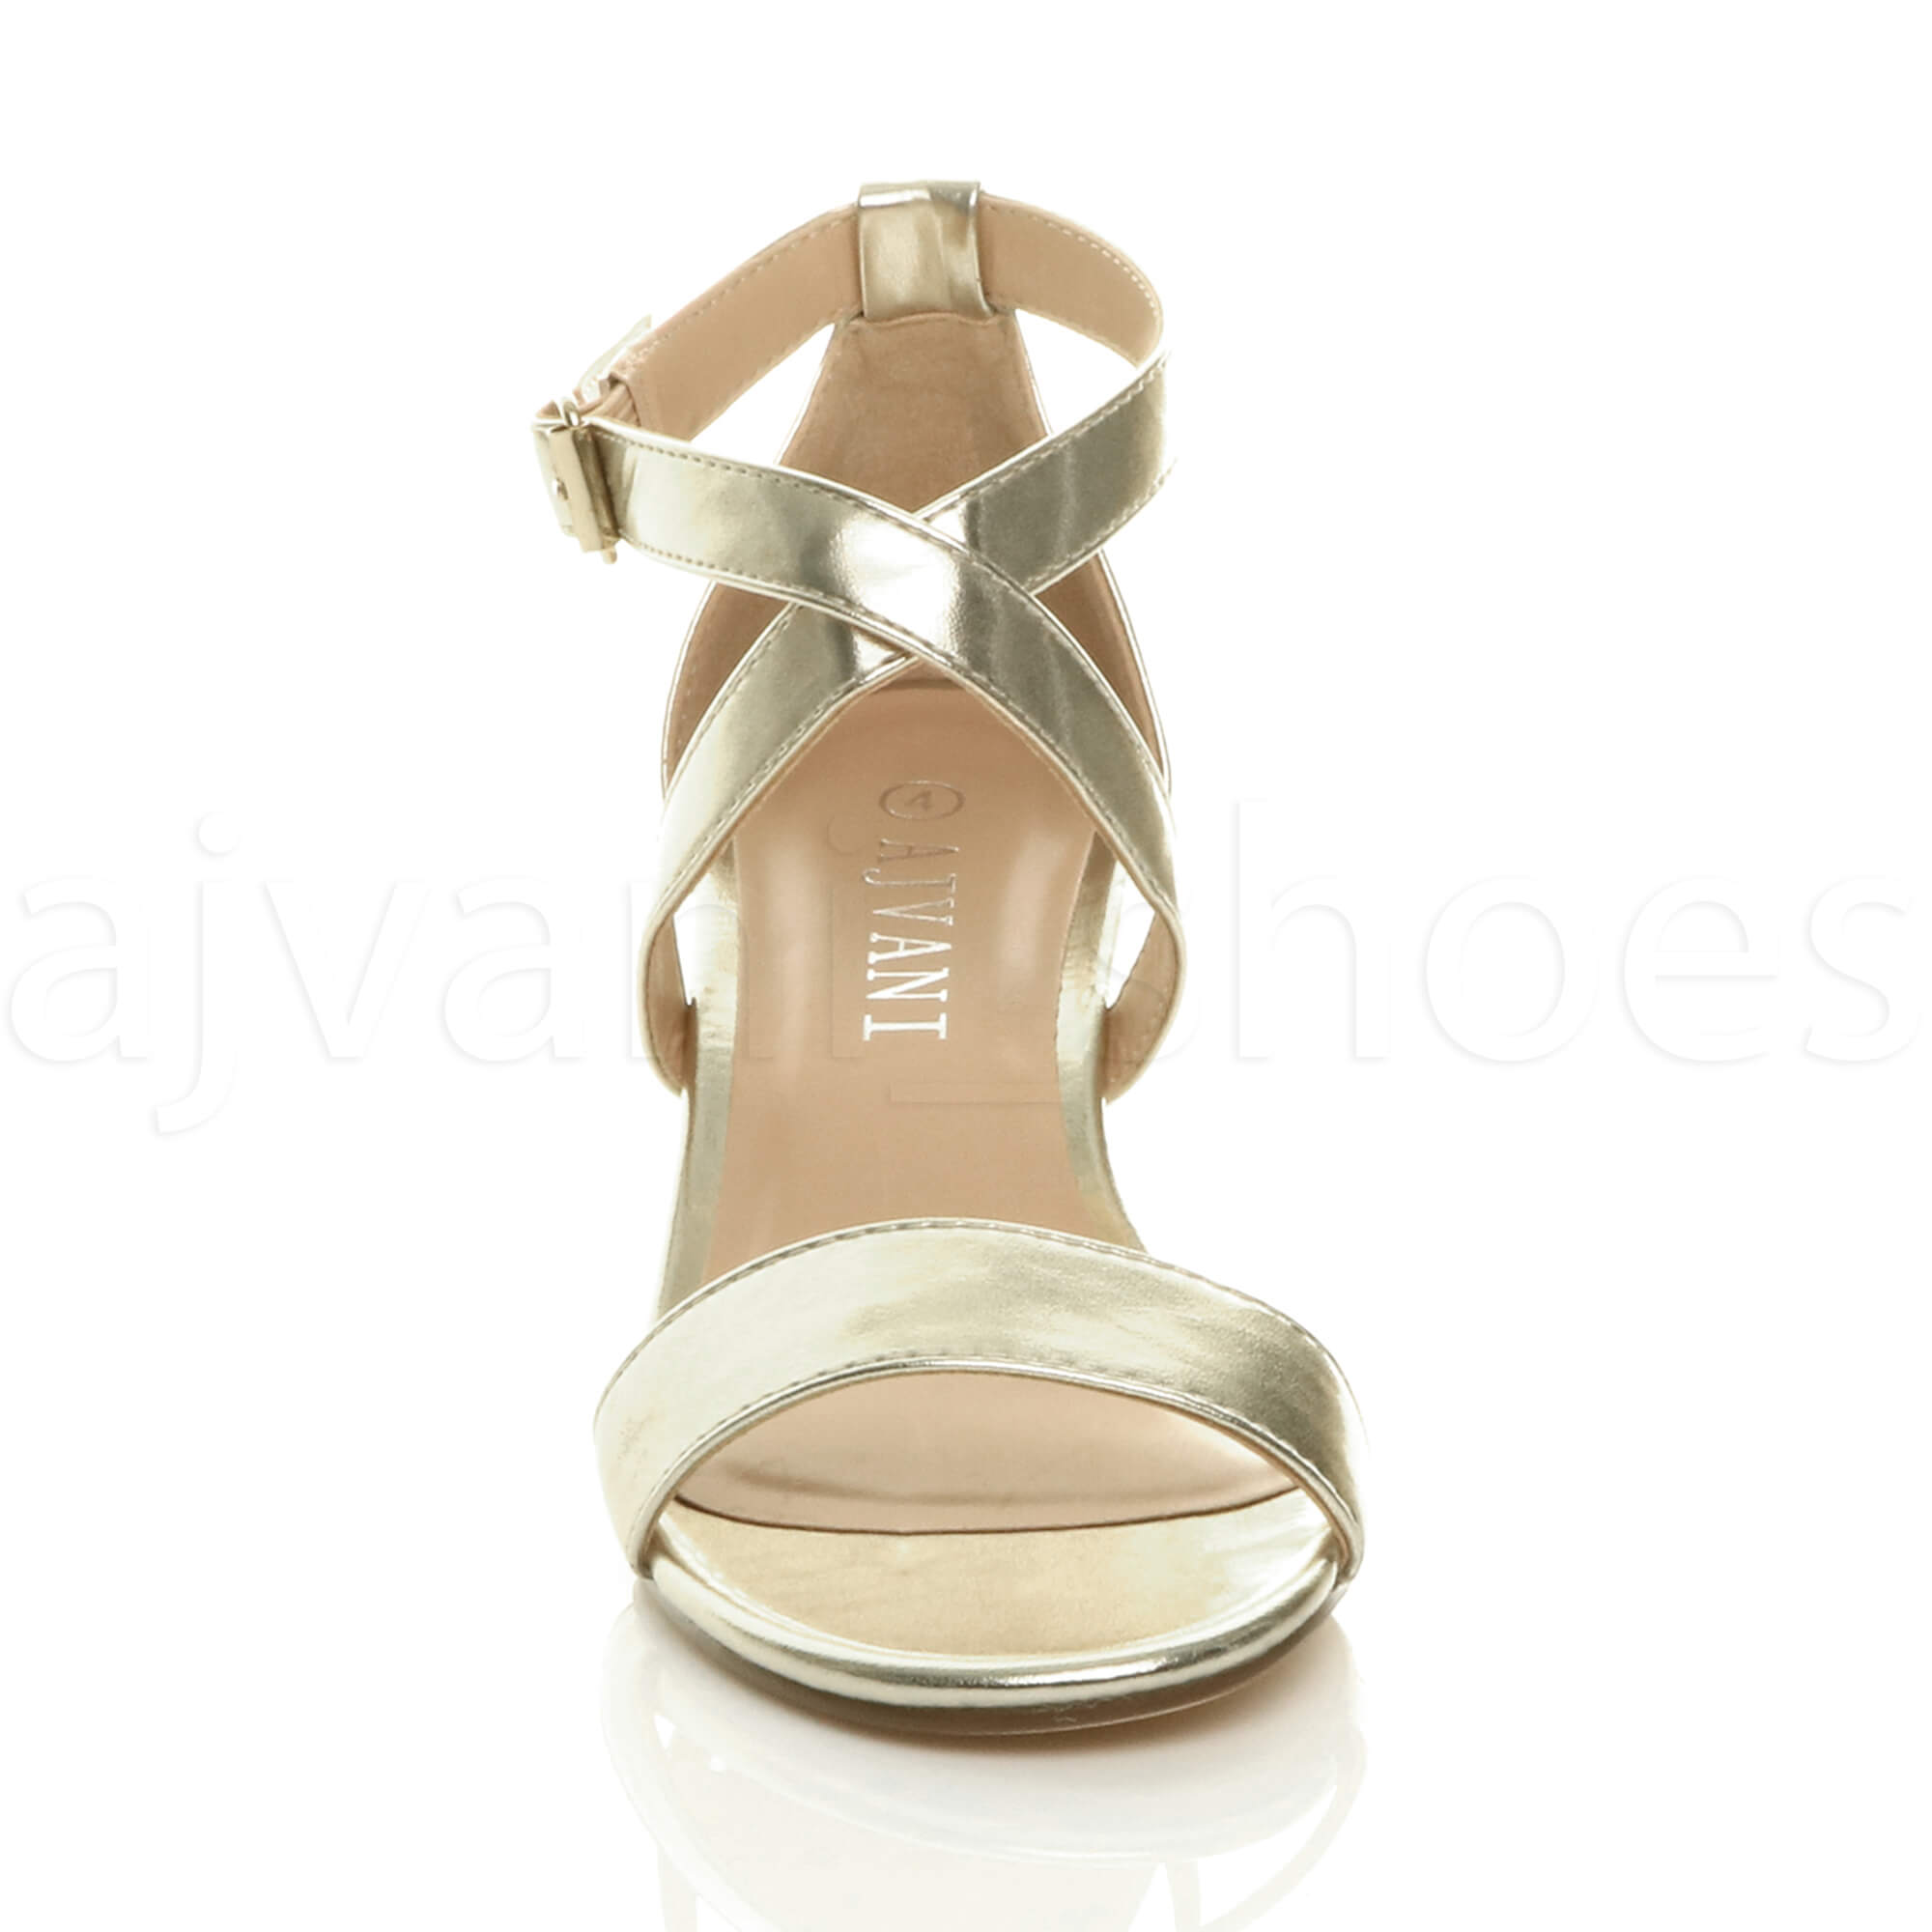 WOMENS-LADIES-MID-LOW-BLOCK-HEEL-CROSS-STRAPS-PARTY-STRAPPY-SANDALS-SHOES-SIZE thumbnail 34